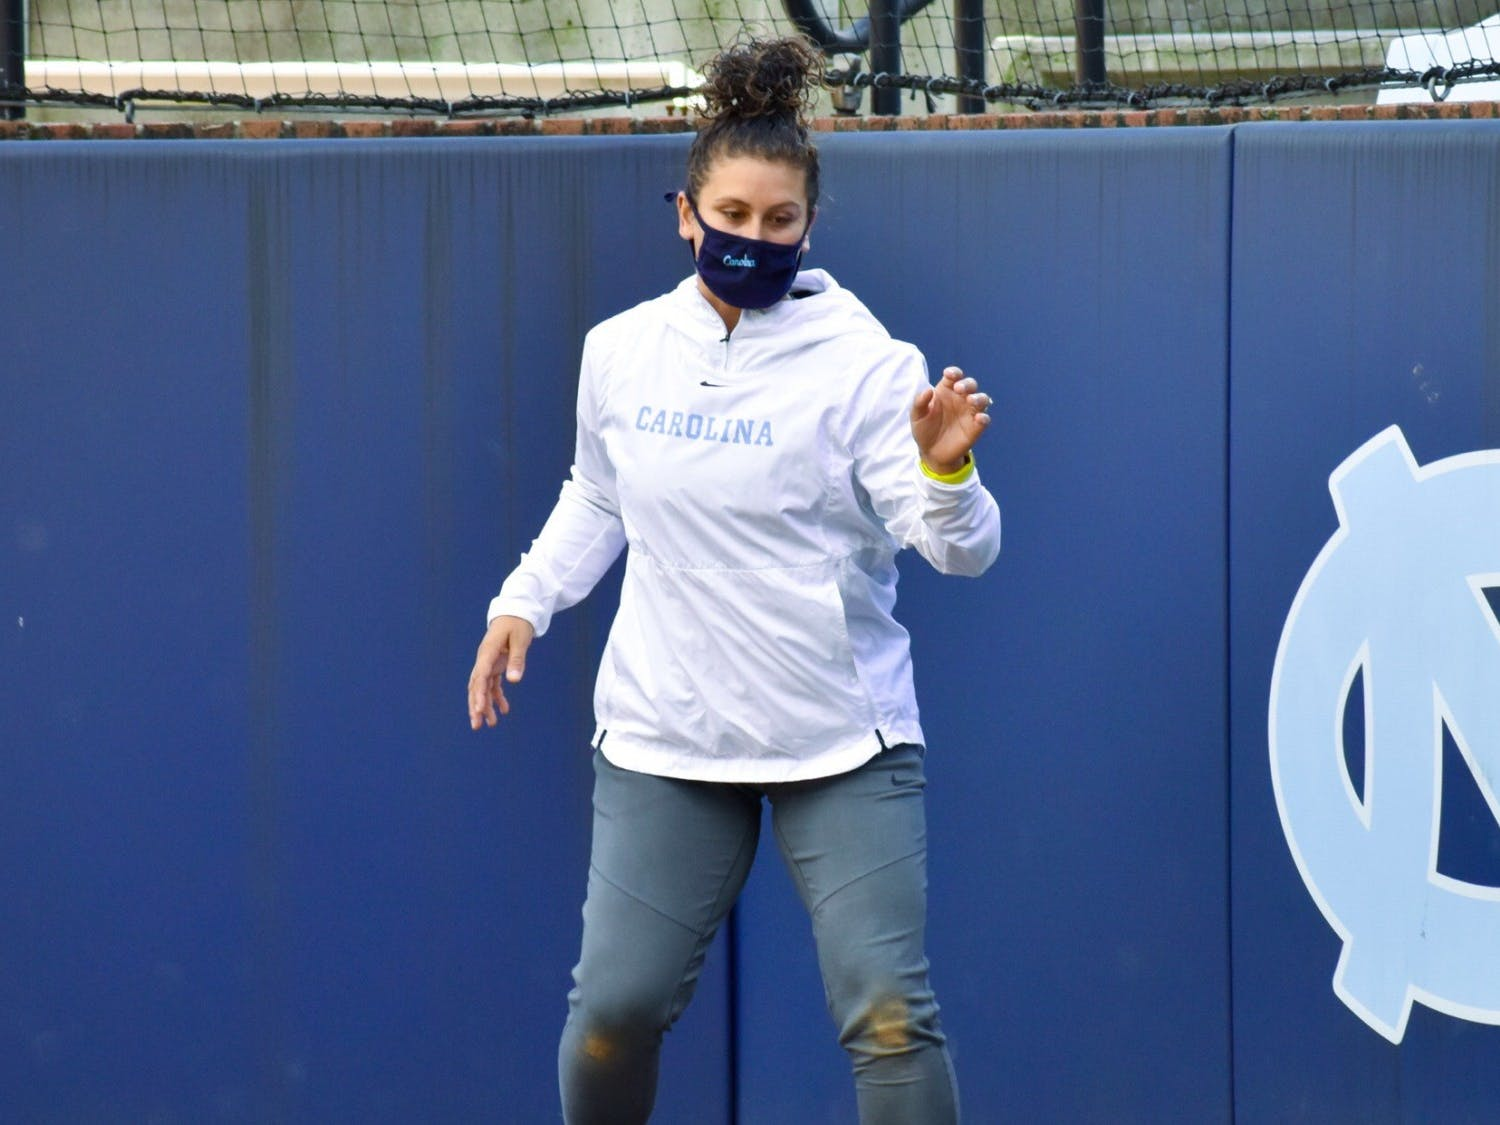 UNC softball recently hired former University of California, Berkeley catcher Annie Aldrete as a volunteer assistant coach. Photo courtesy of UNC Athletic Communications.